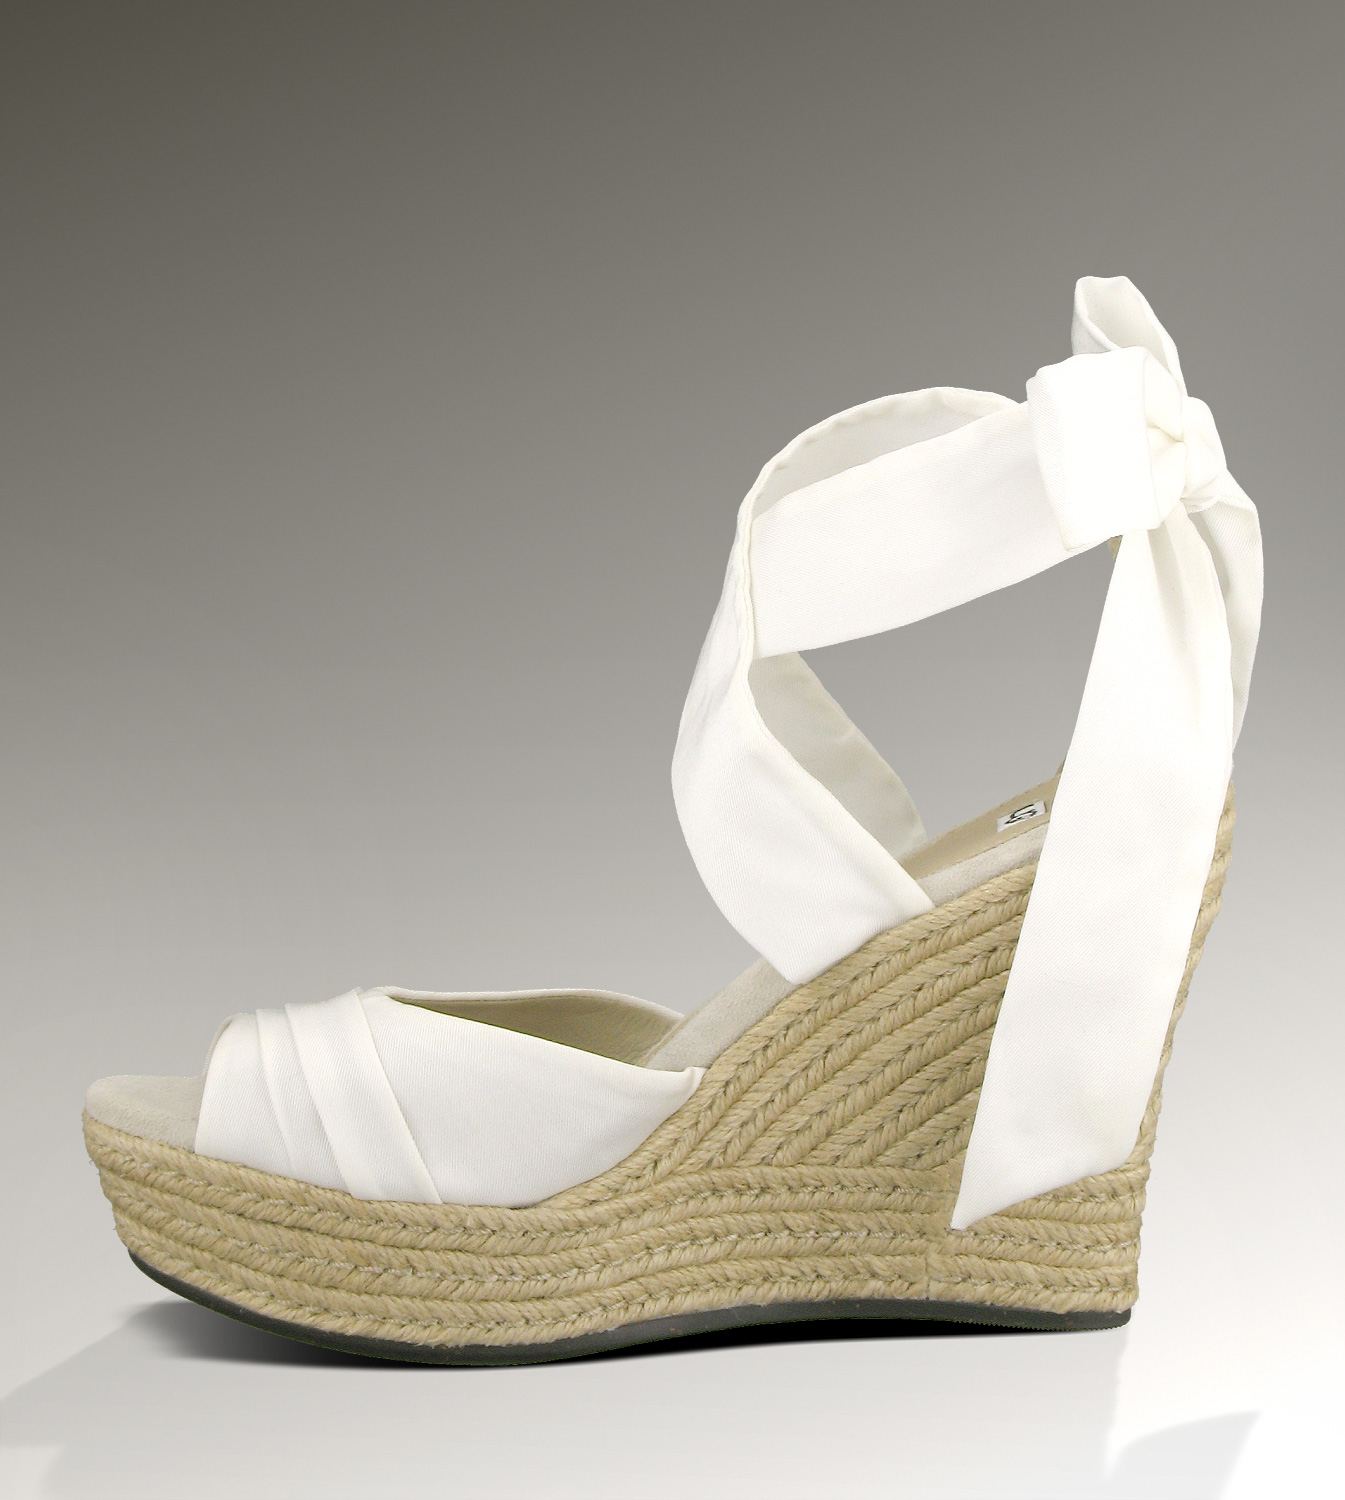 UGG Lucianna 1002916 White Sandals